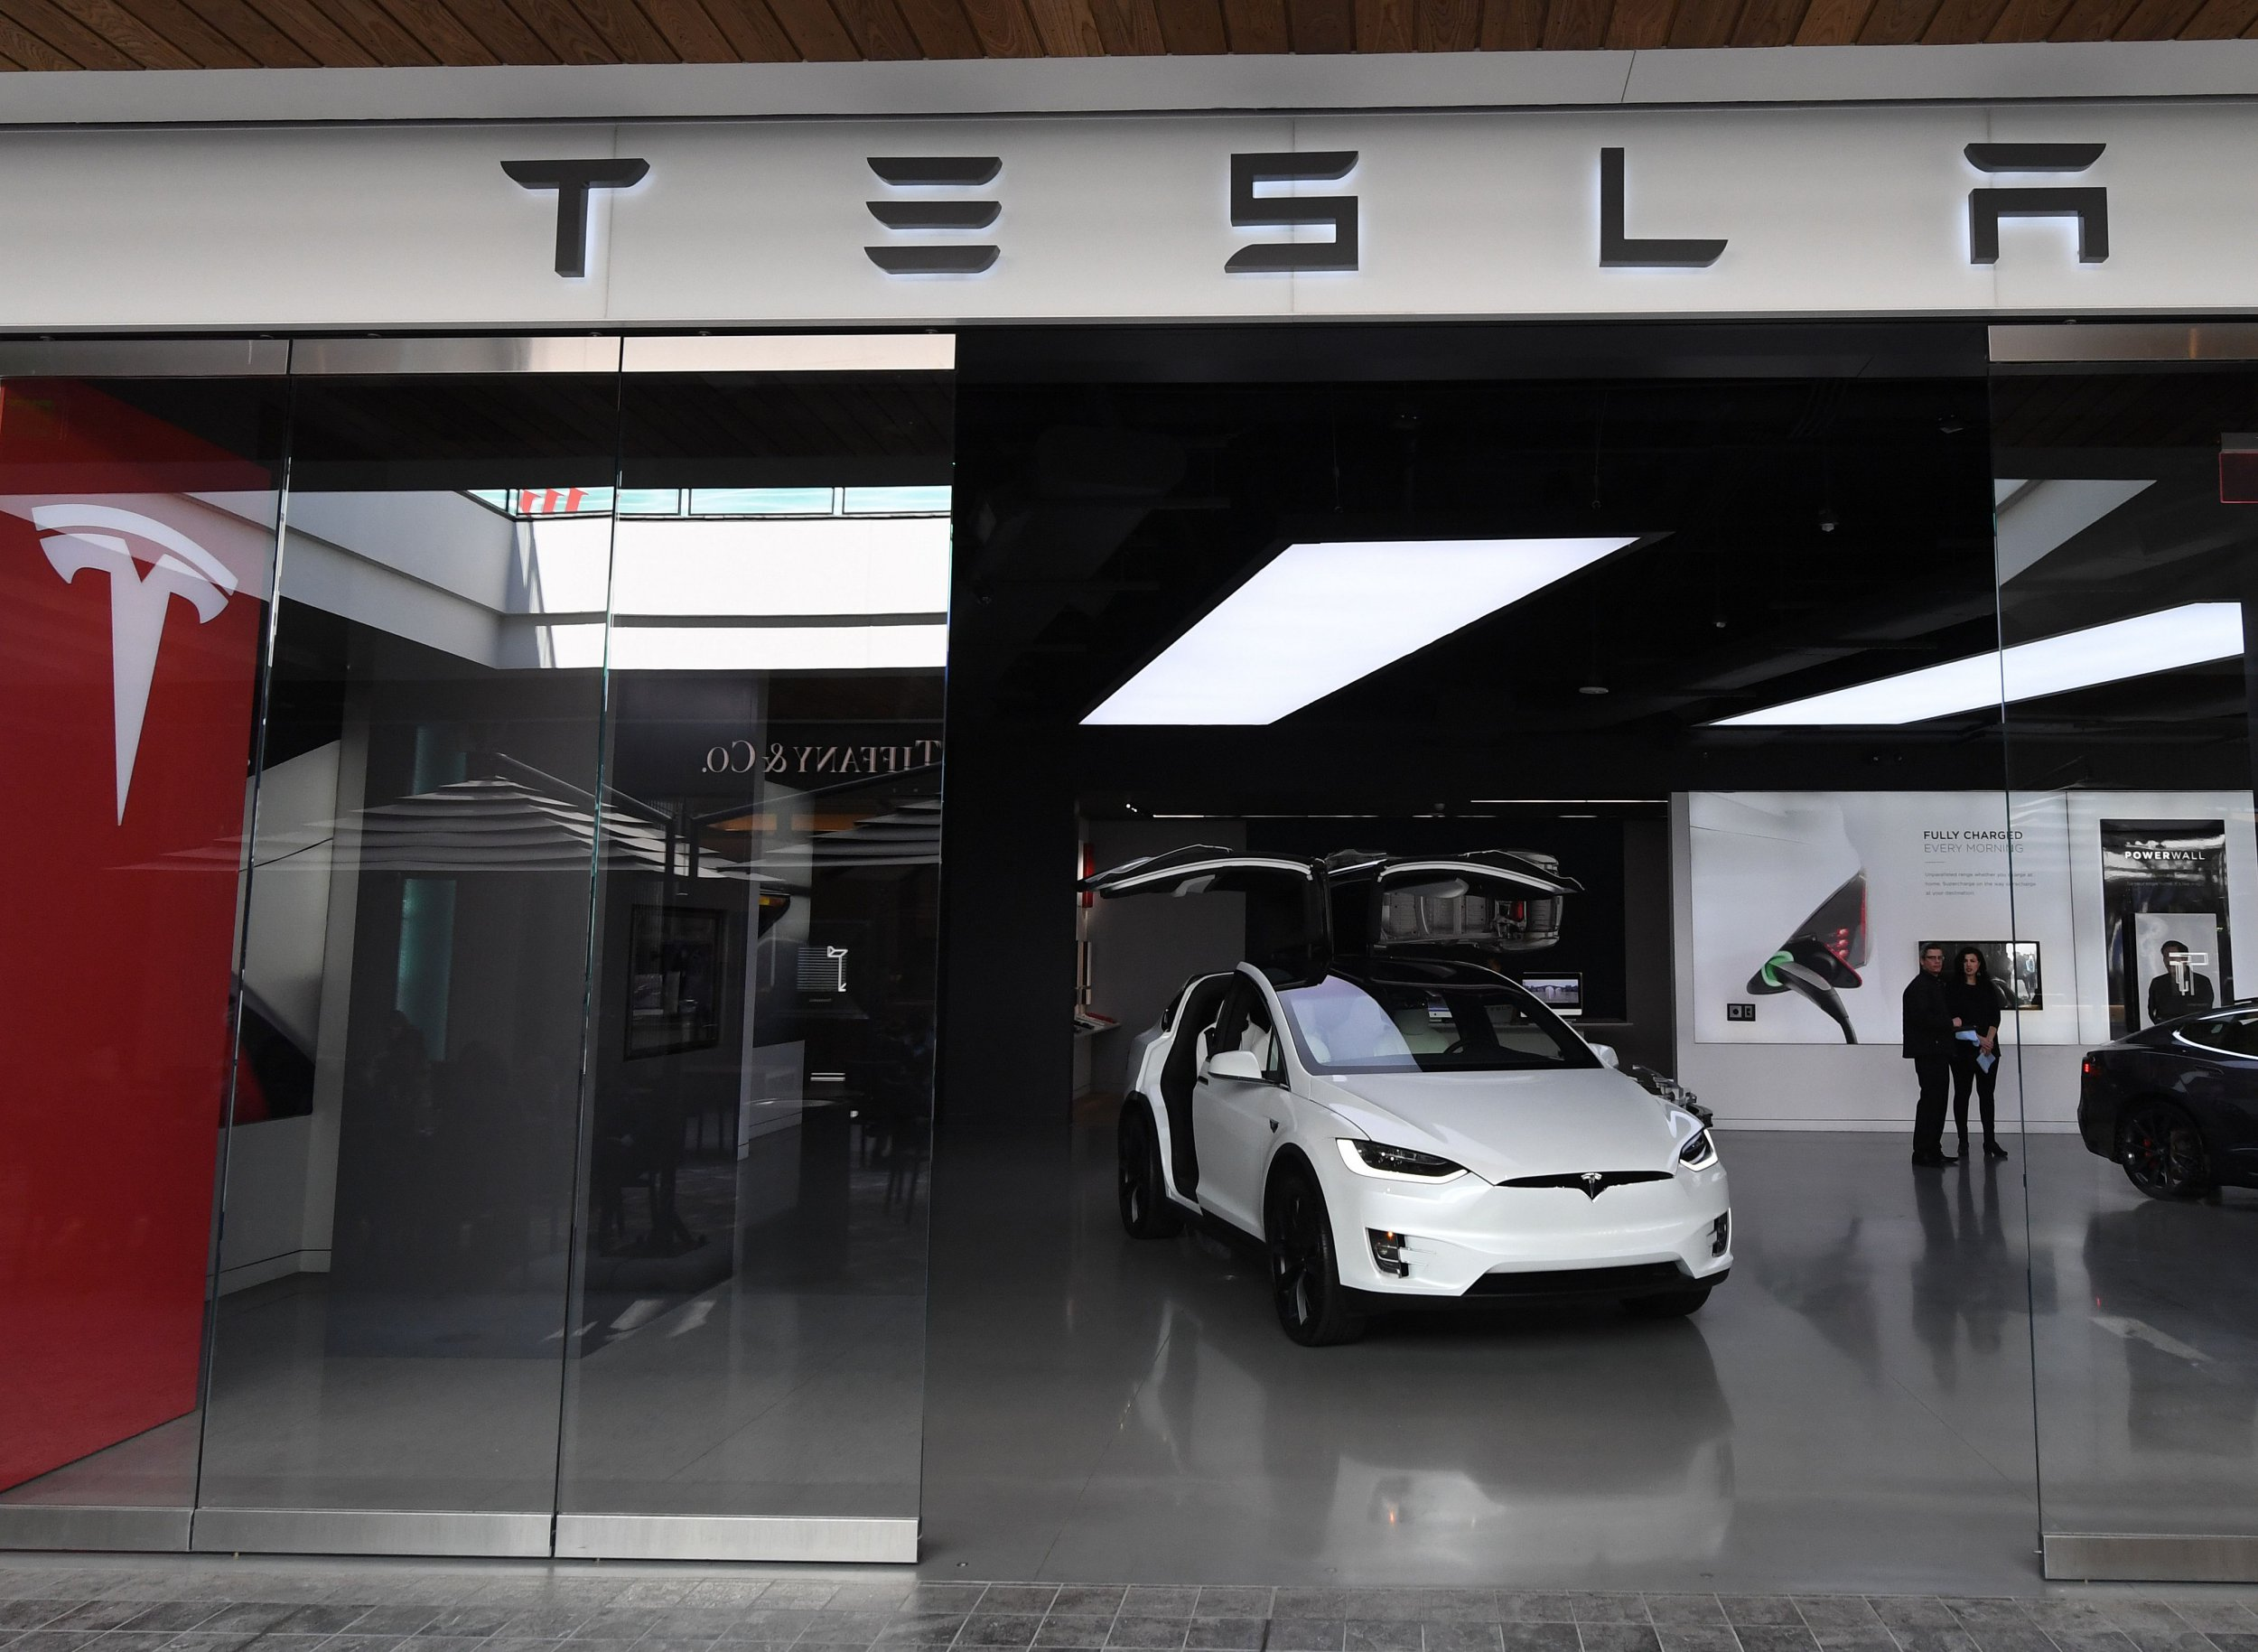 Elon Musk facing backlash as Tesla owners take to the streets to protest against dramatic price cuts